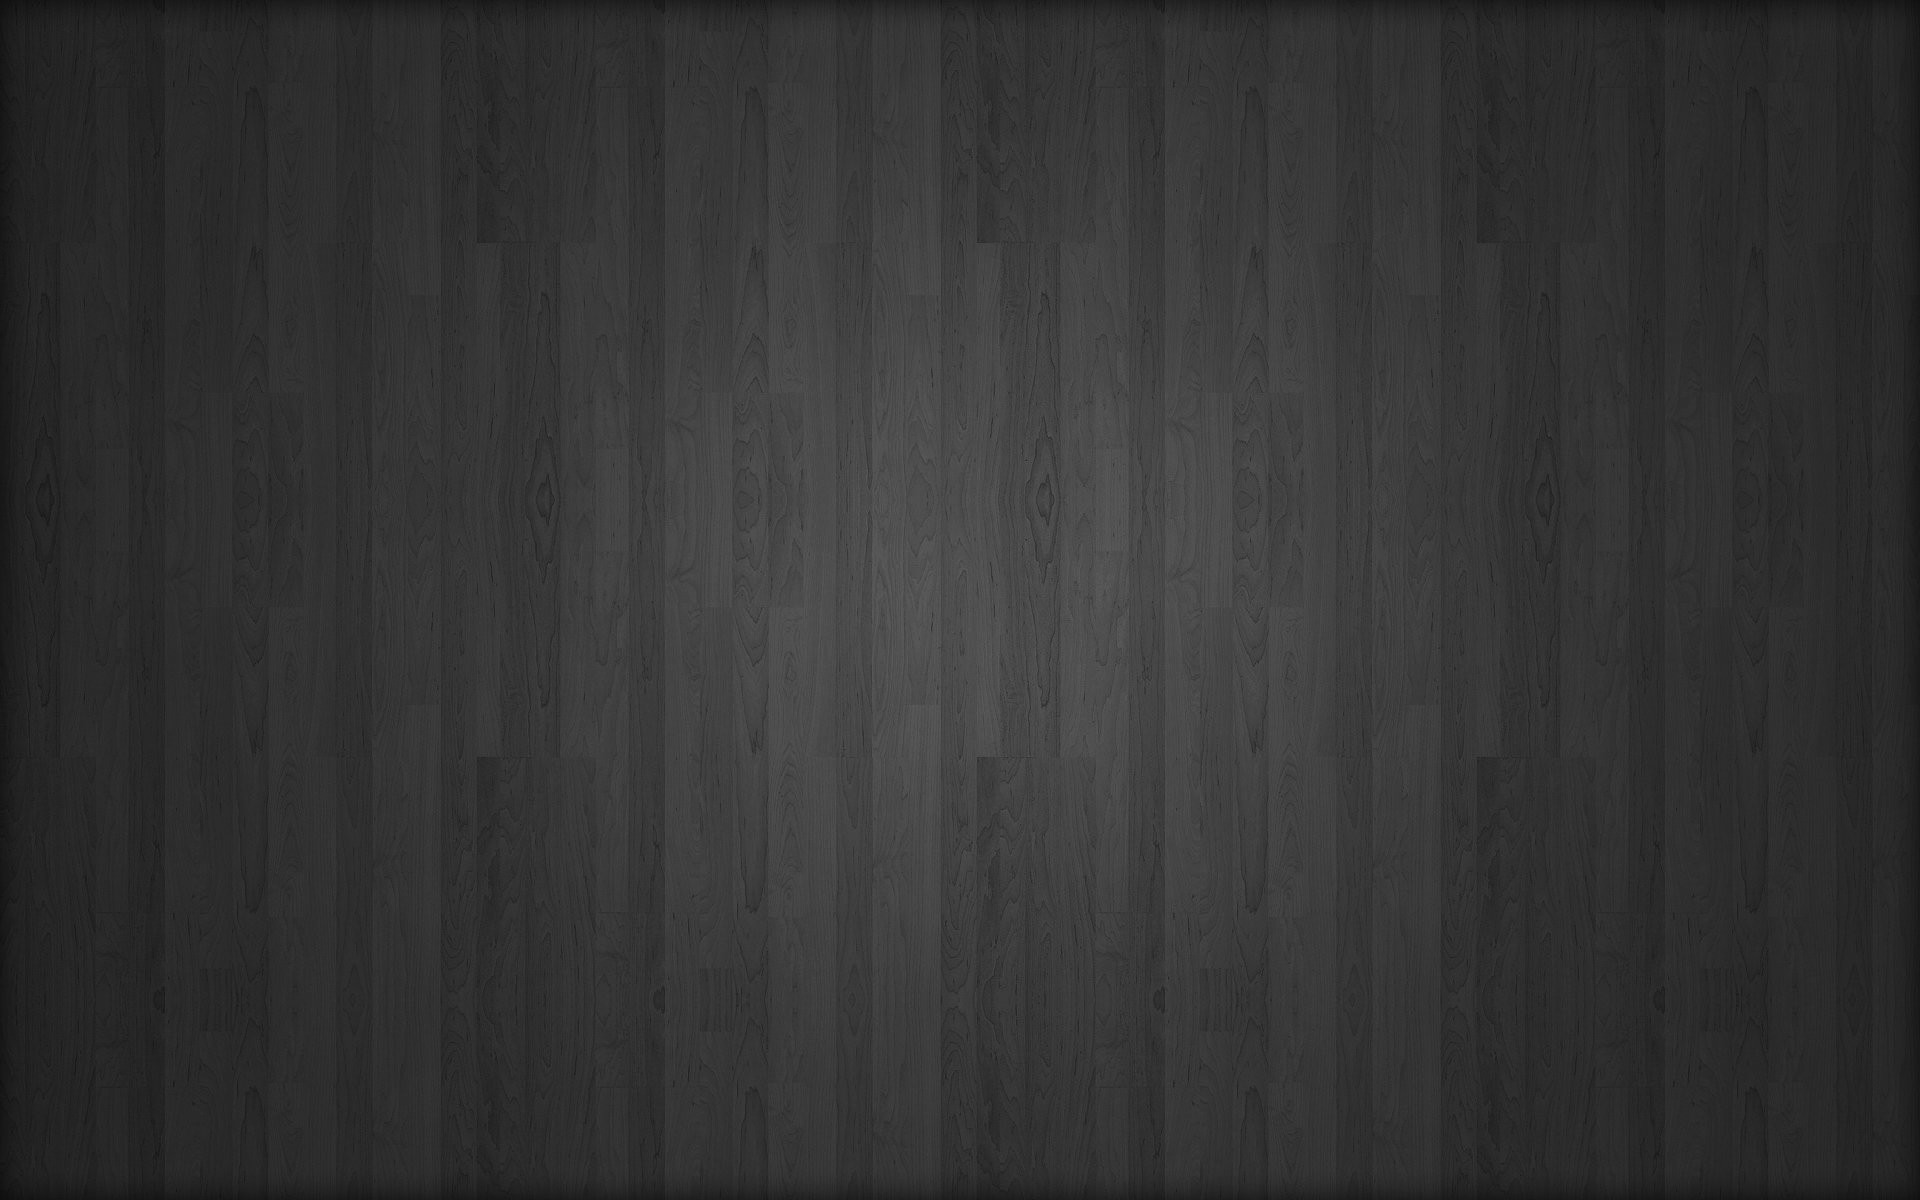 1920x1200 Dark Wood Wallpaper. Black Wood Wallpaper